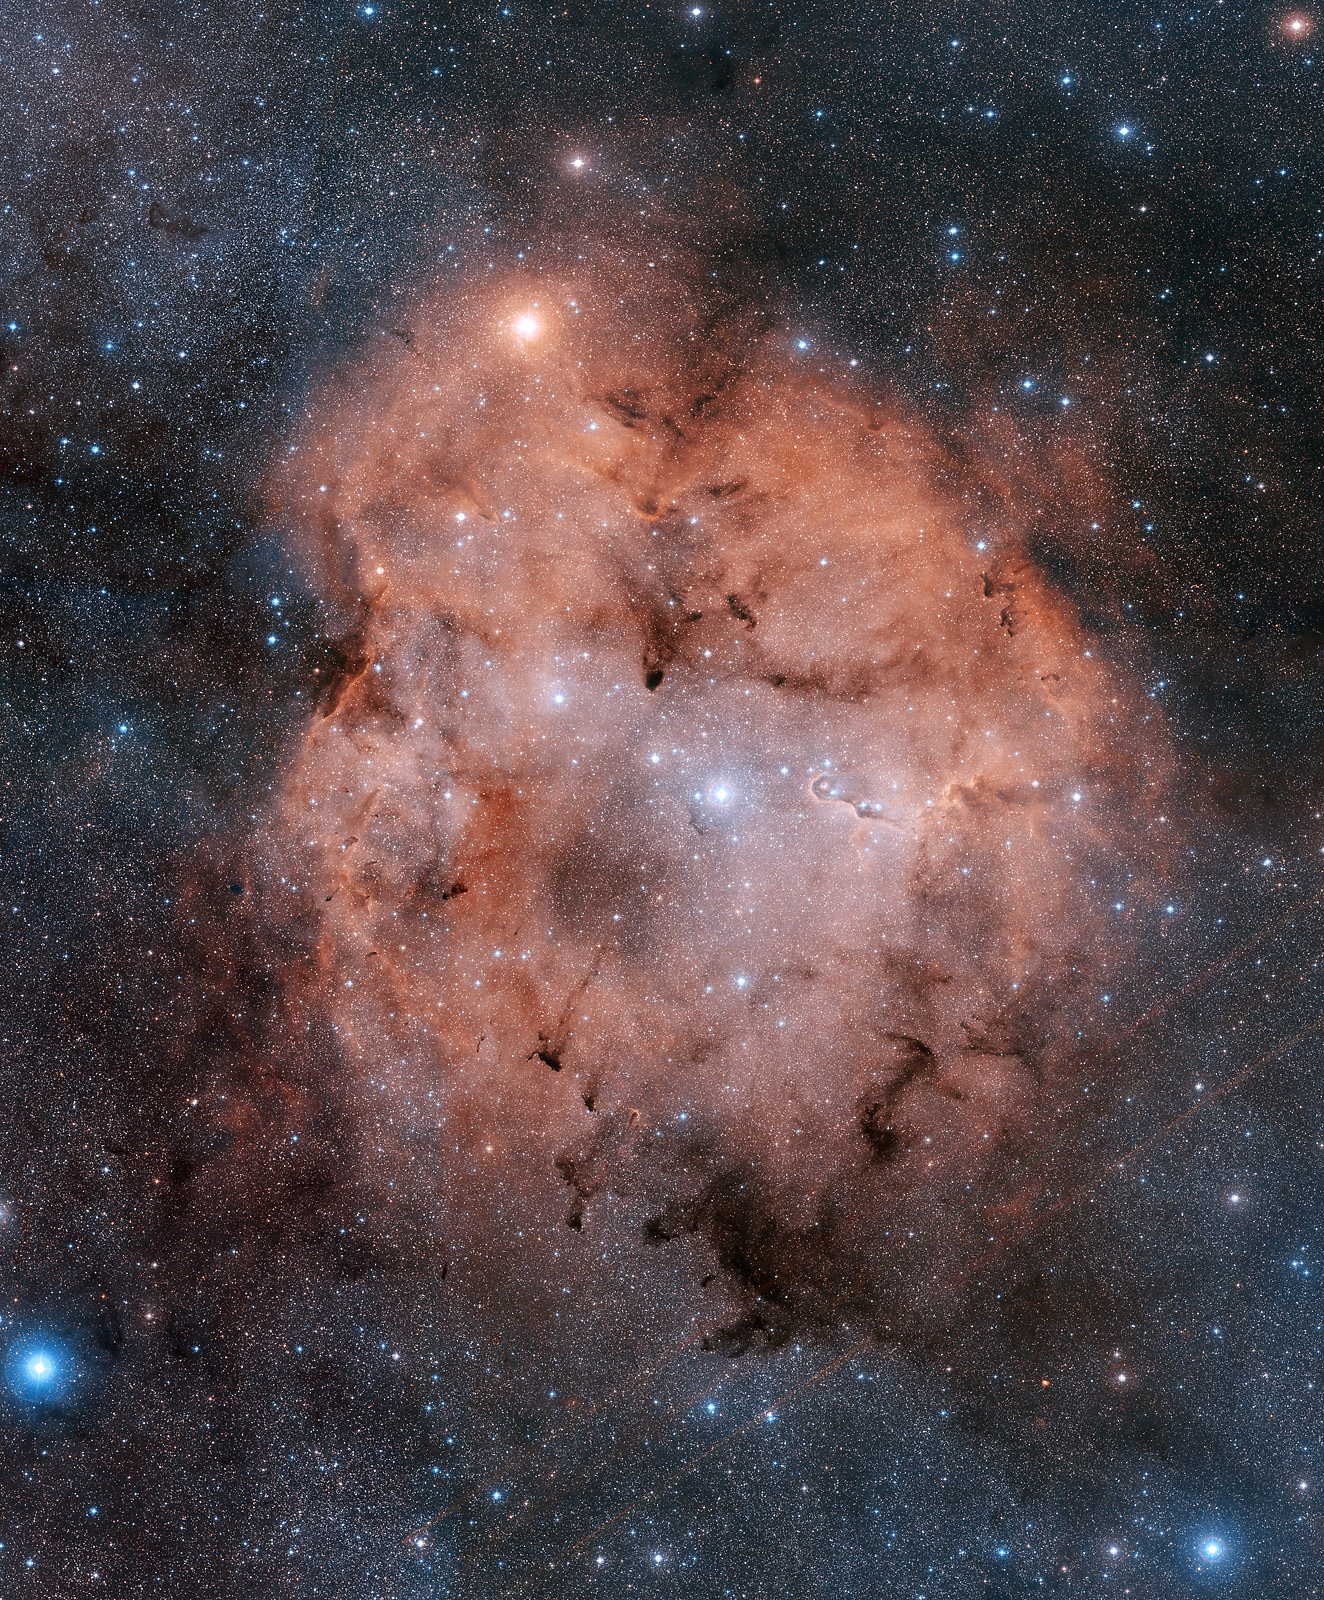 APOD: 2012 August 5 - IC 1396: Emission Nebula in Cepheus